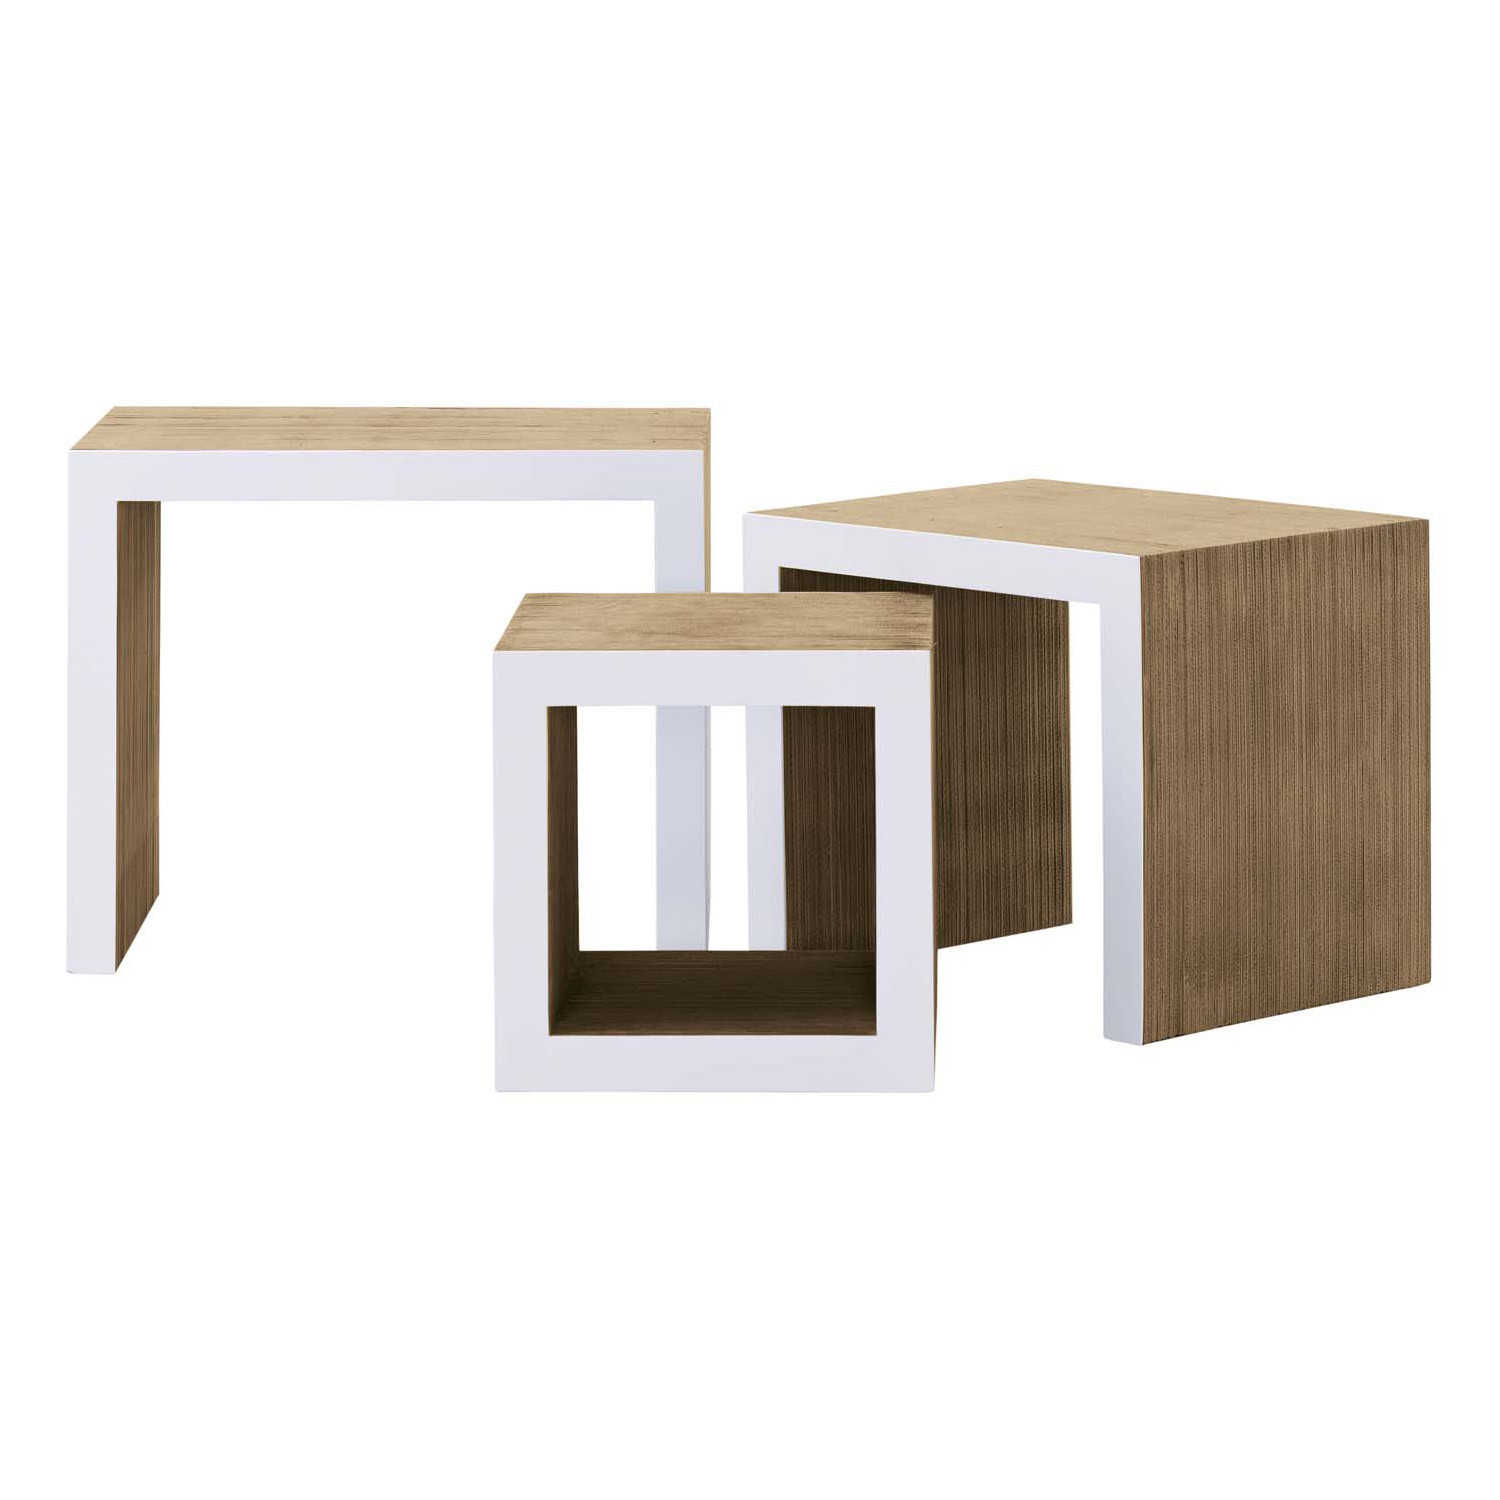 Frank Gehry's Low Table Set